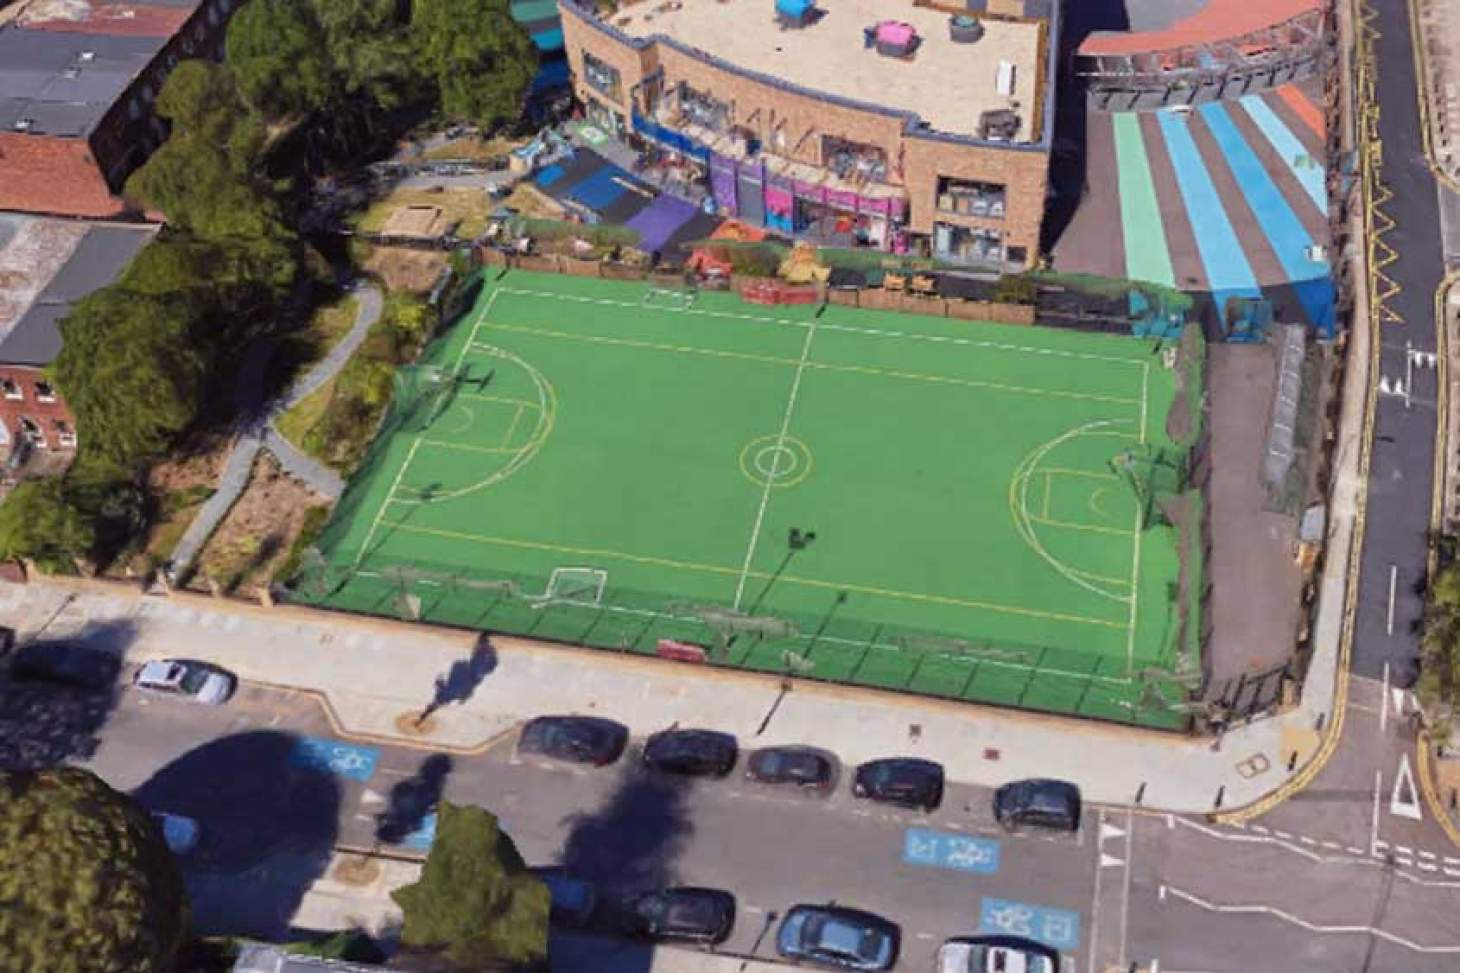 Canary Wharf MUGA 5 a side | Astroturf football pitch